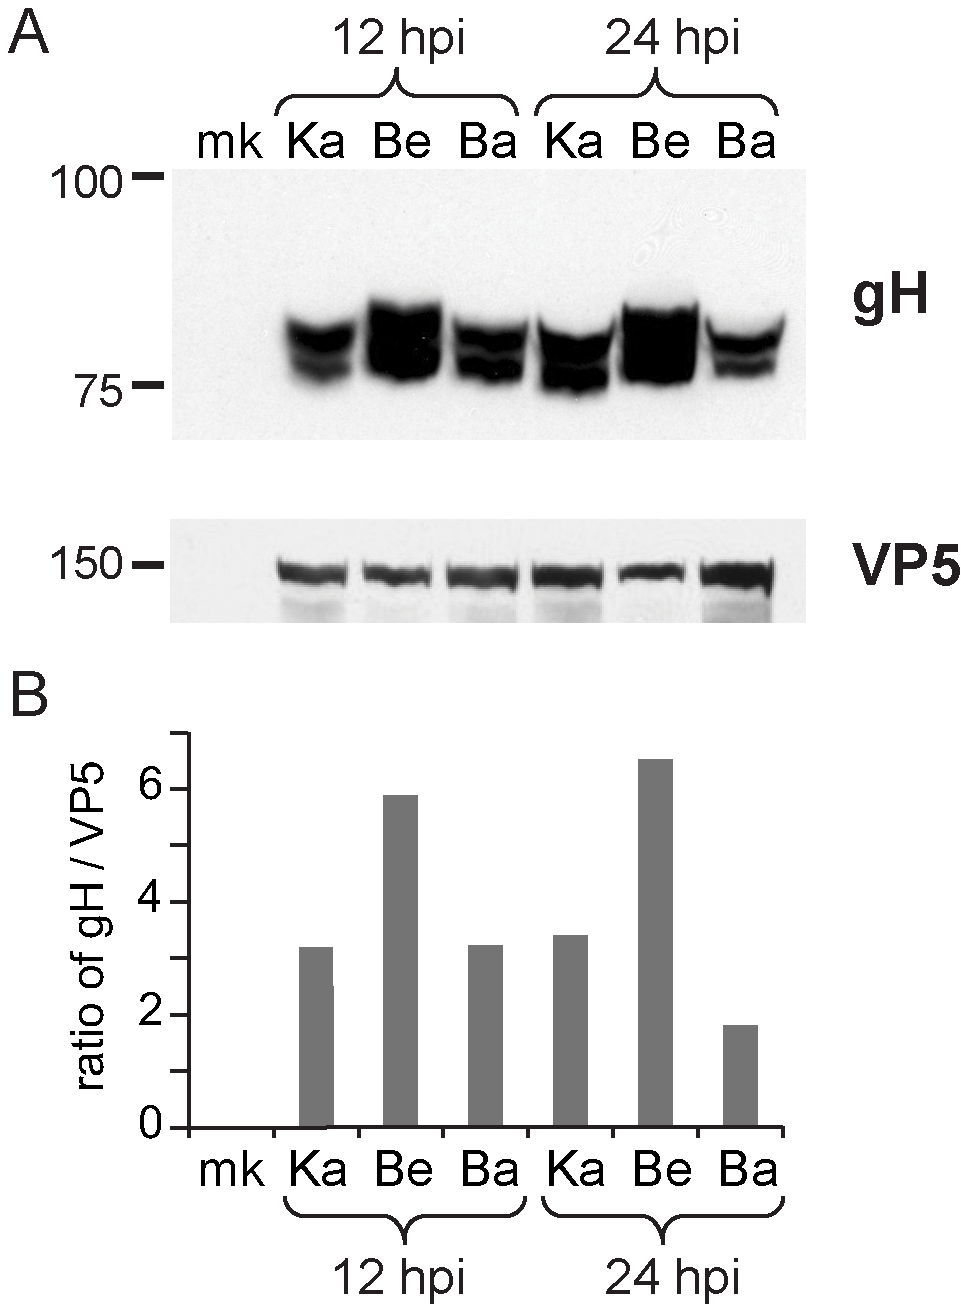 Inter-strain variation in protein levels of gH.